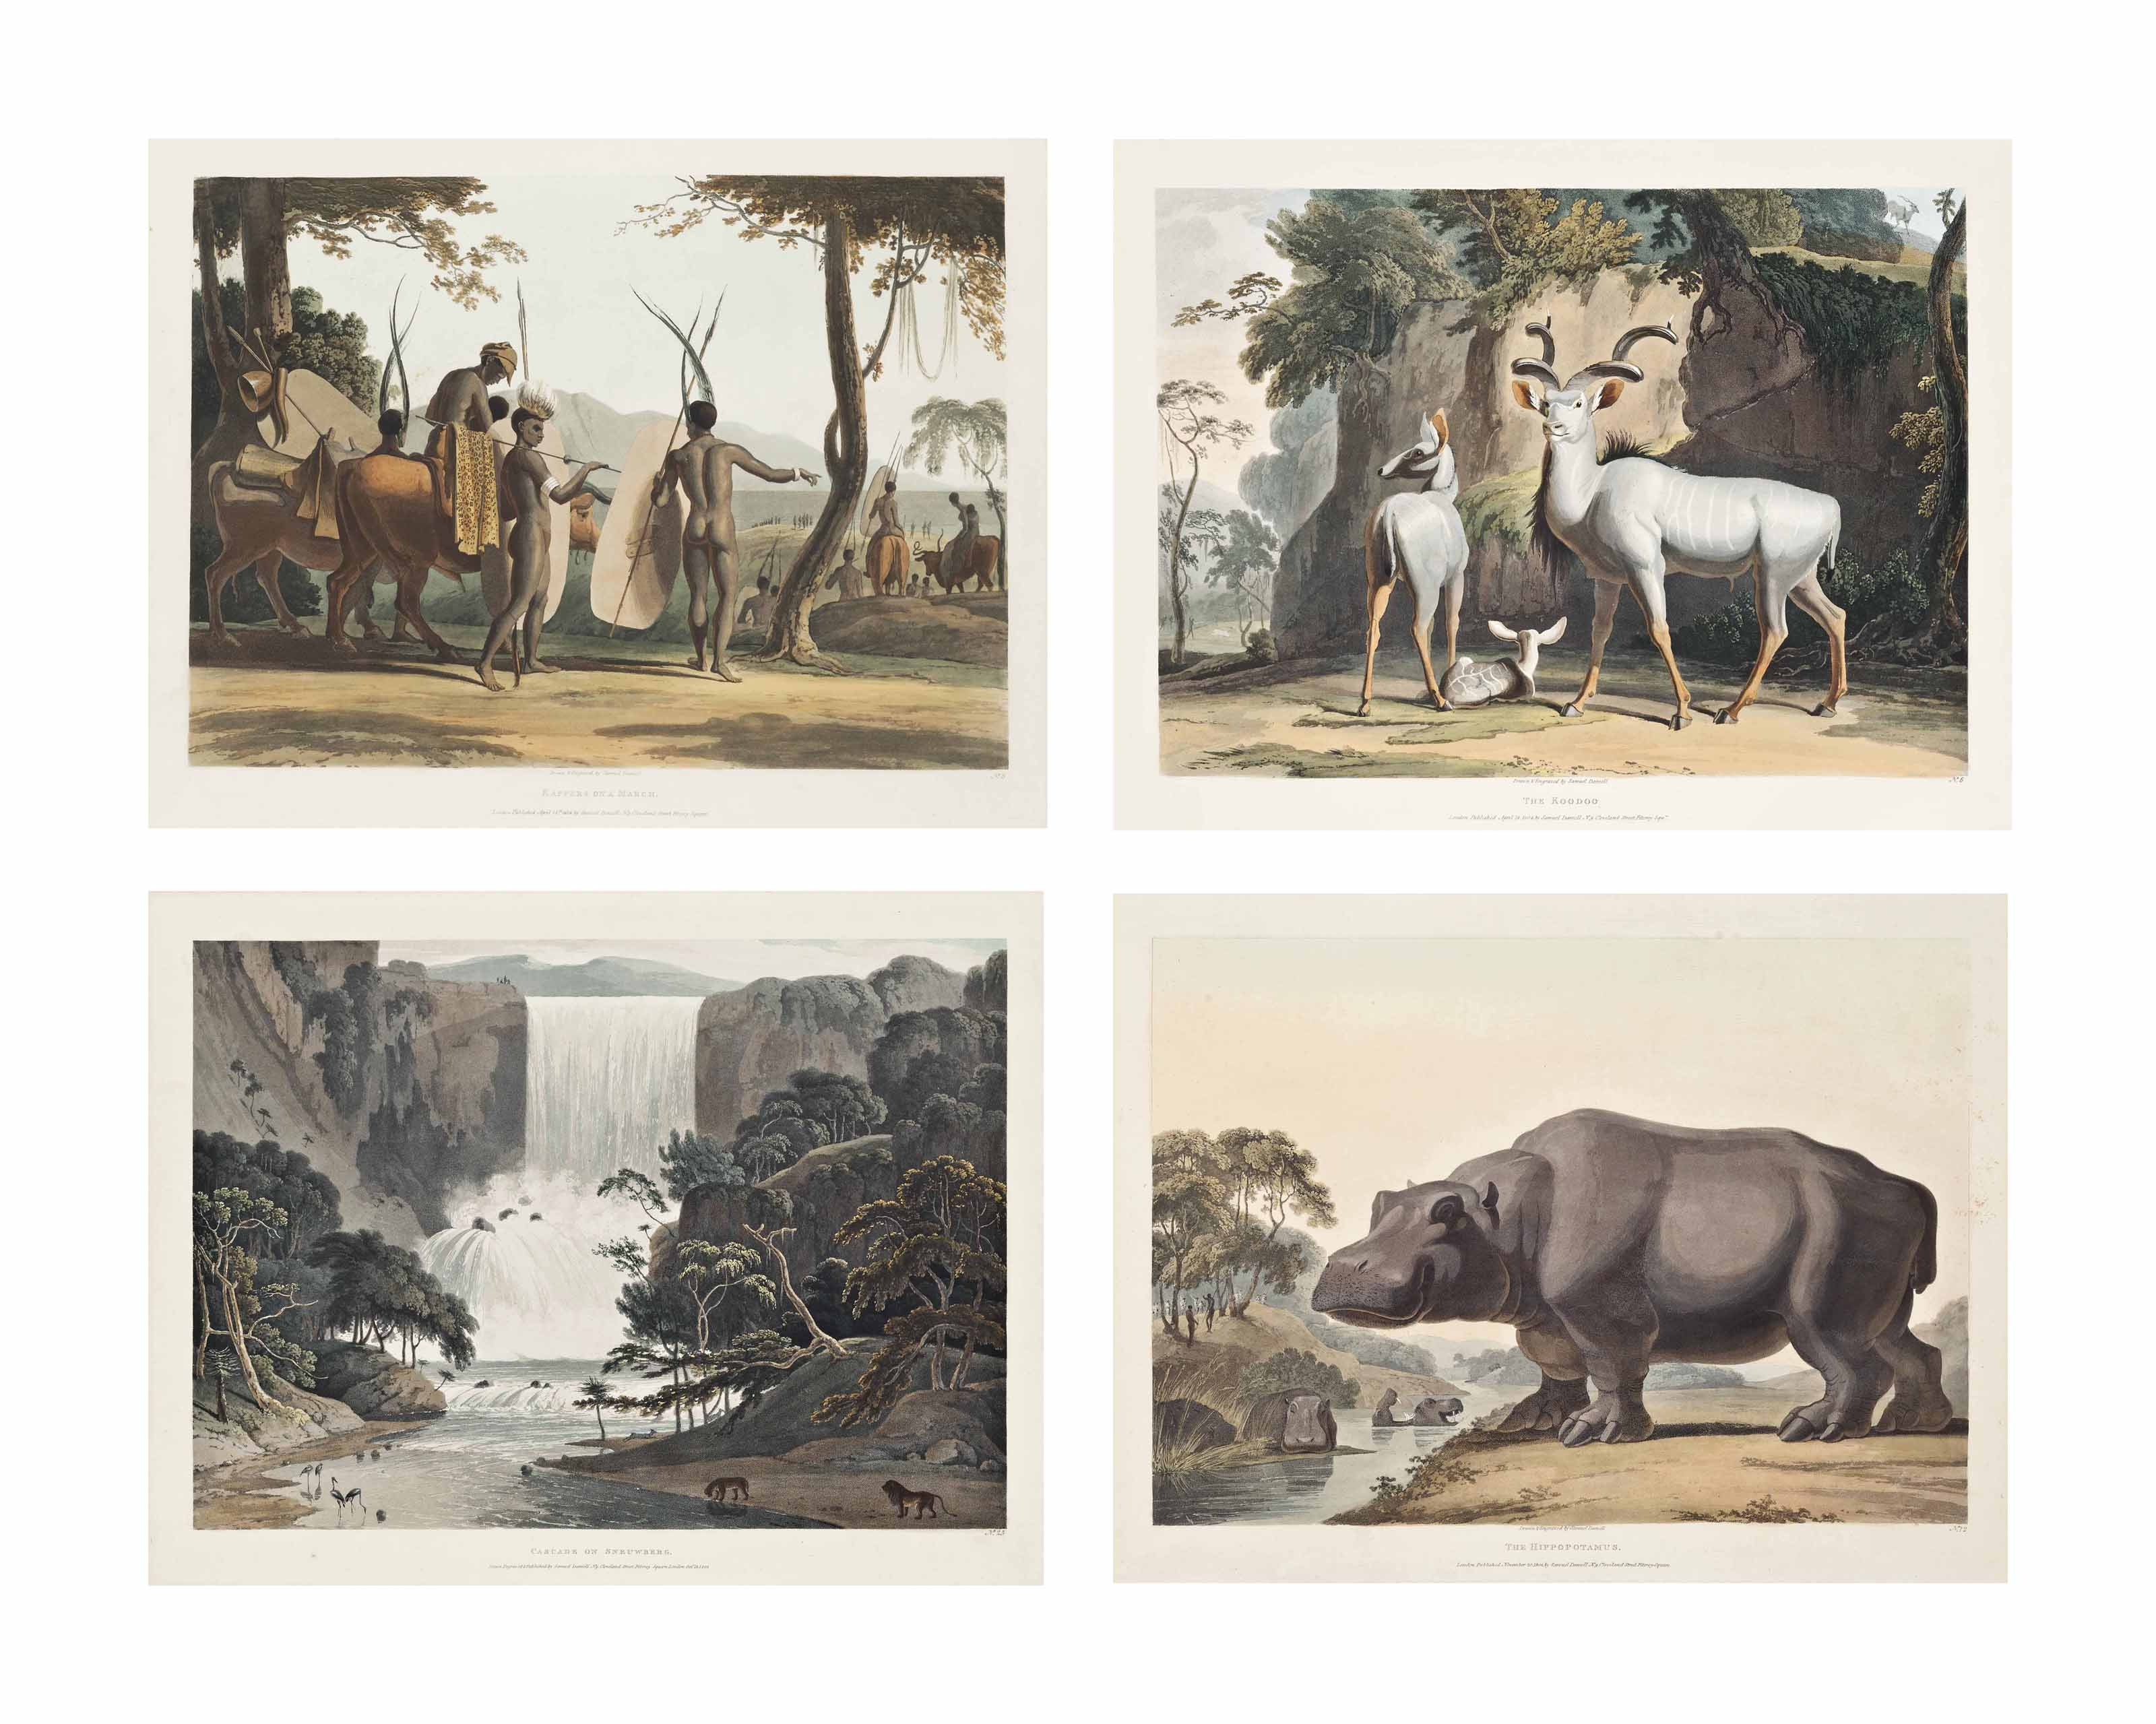 African Scenery and Animals (Abbey Travel 321, nos. 1-18, 20-32)